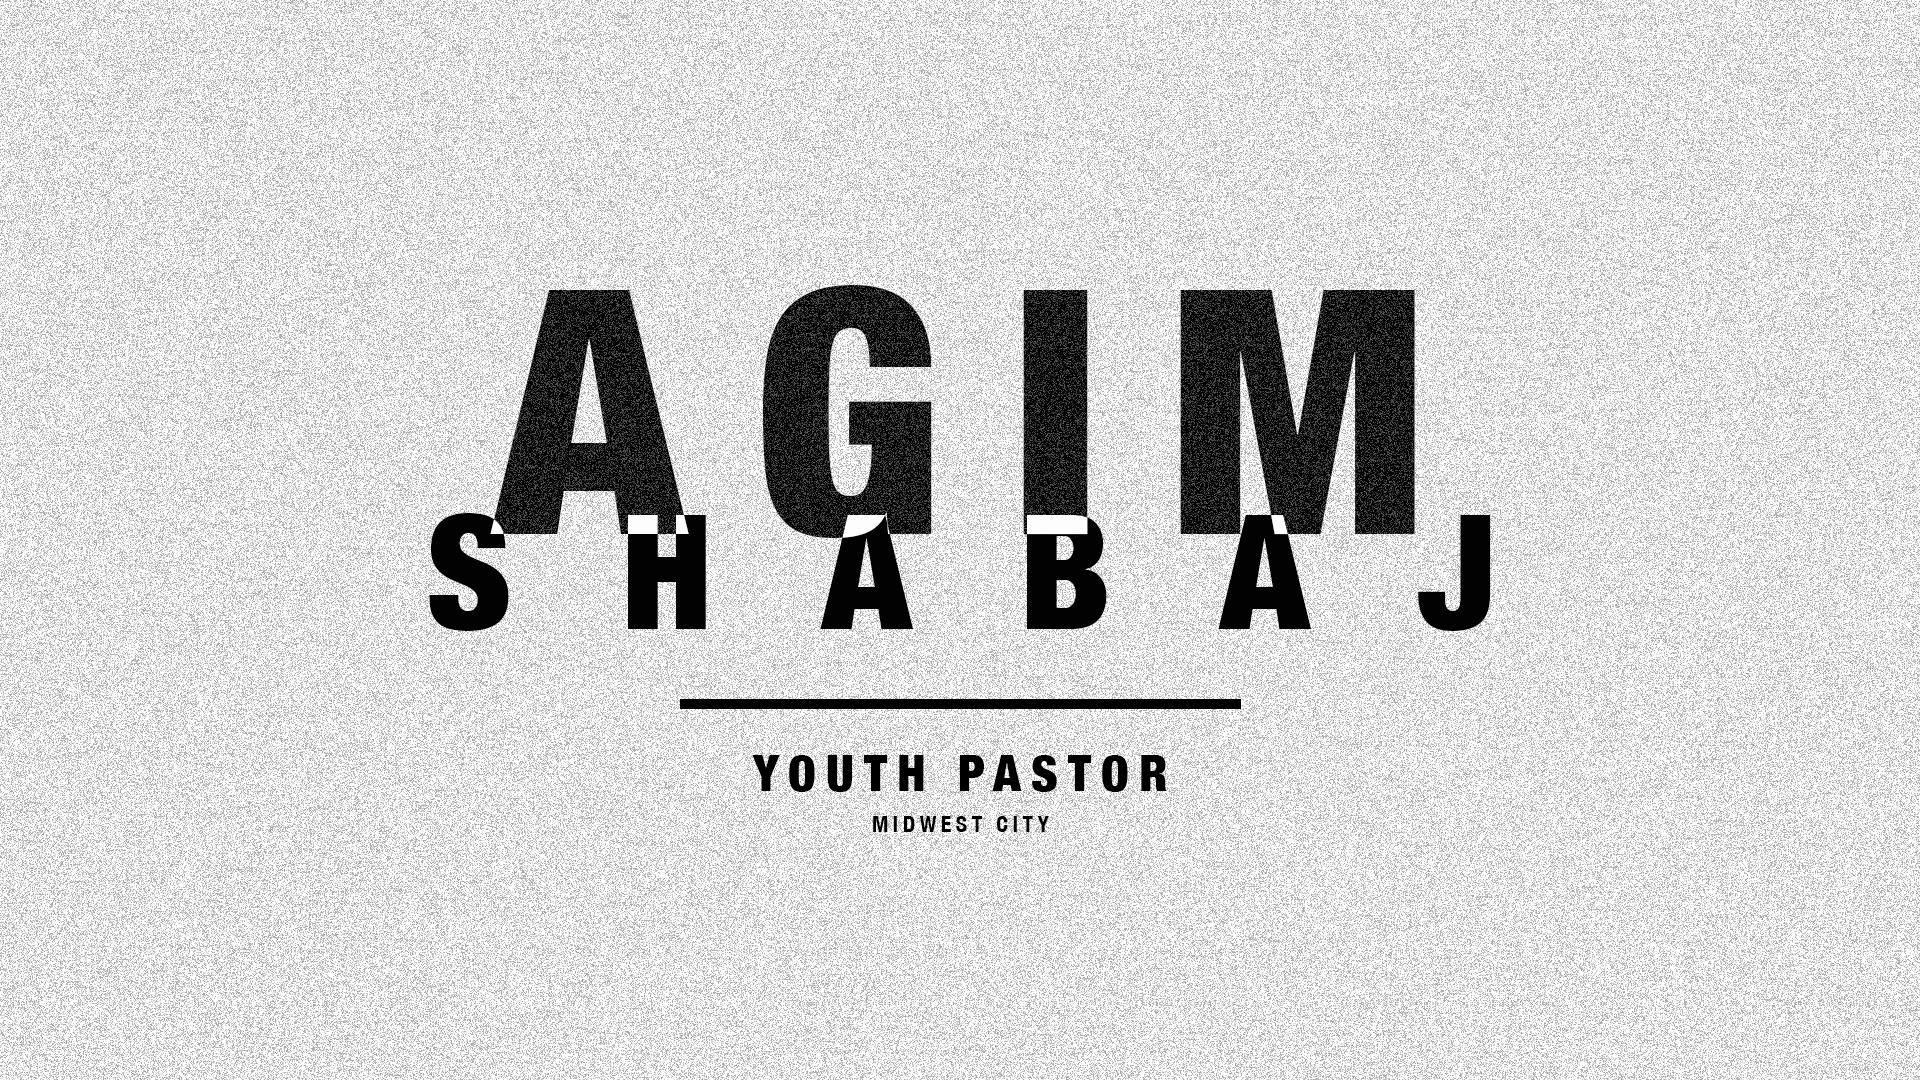 Youth Pastor Slide - white (PSD)